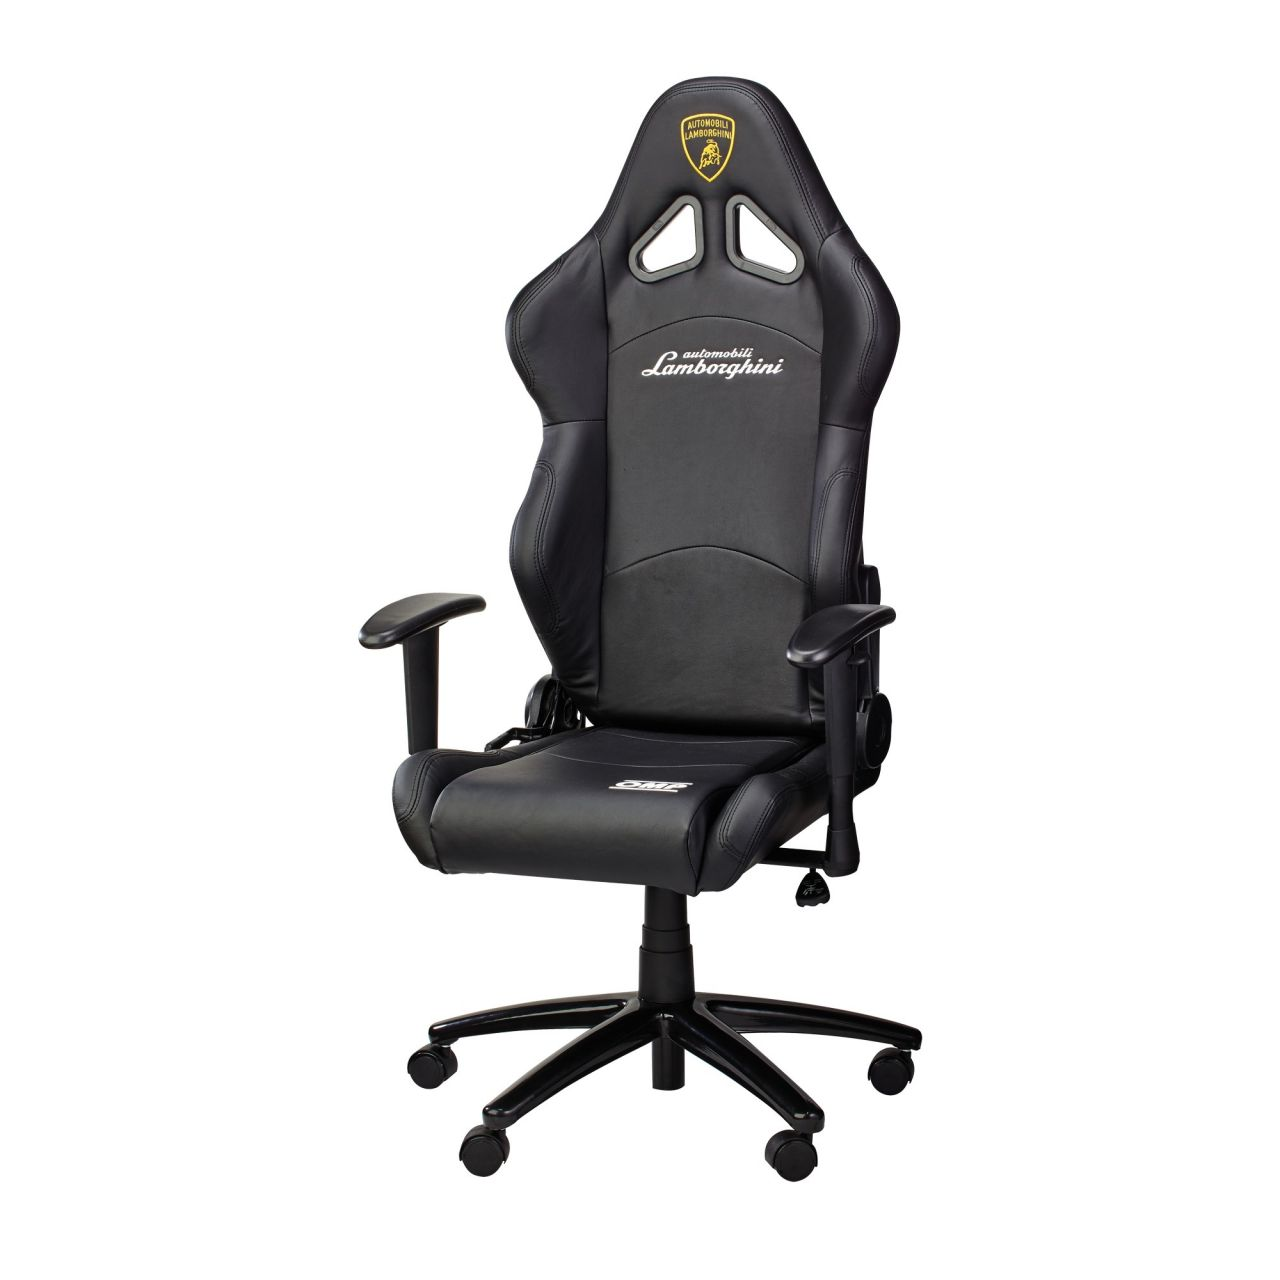 OMP Racing Seat fice Chair GSM Sport Seats